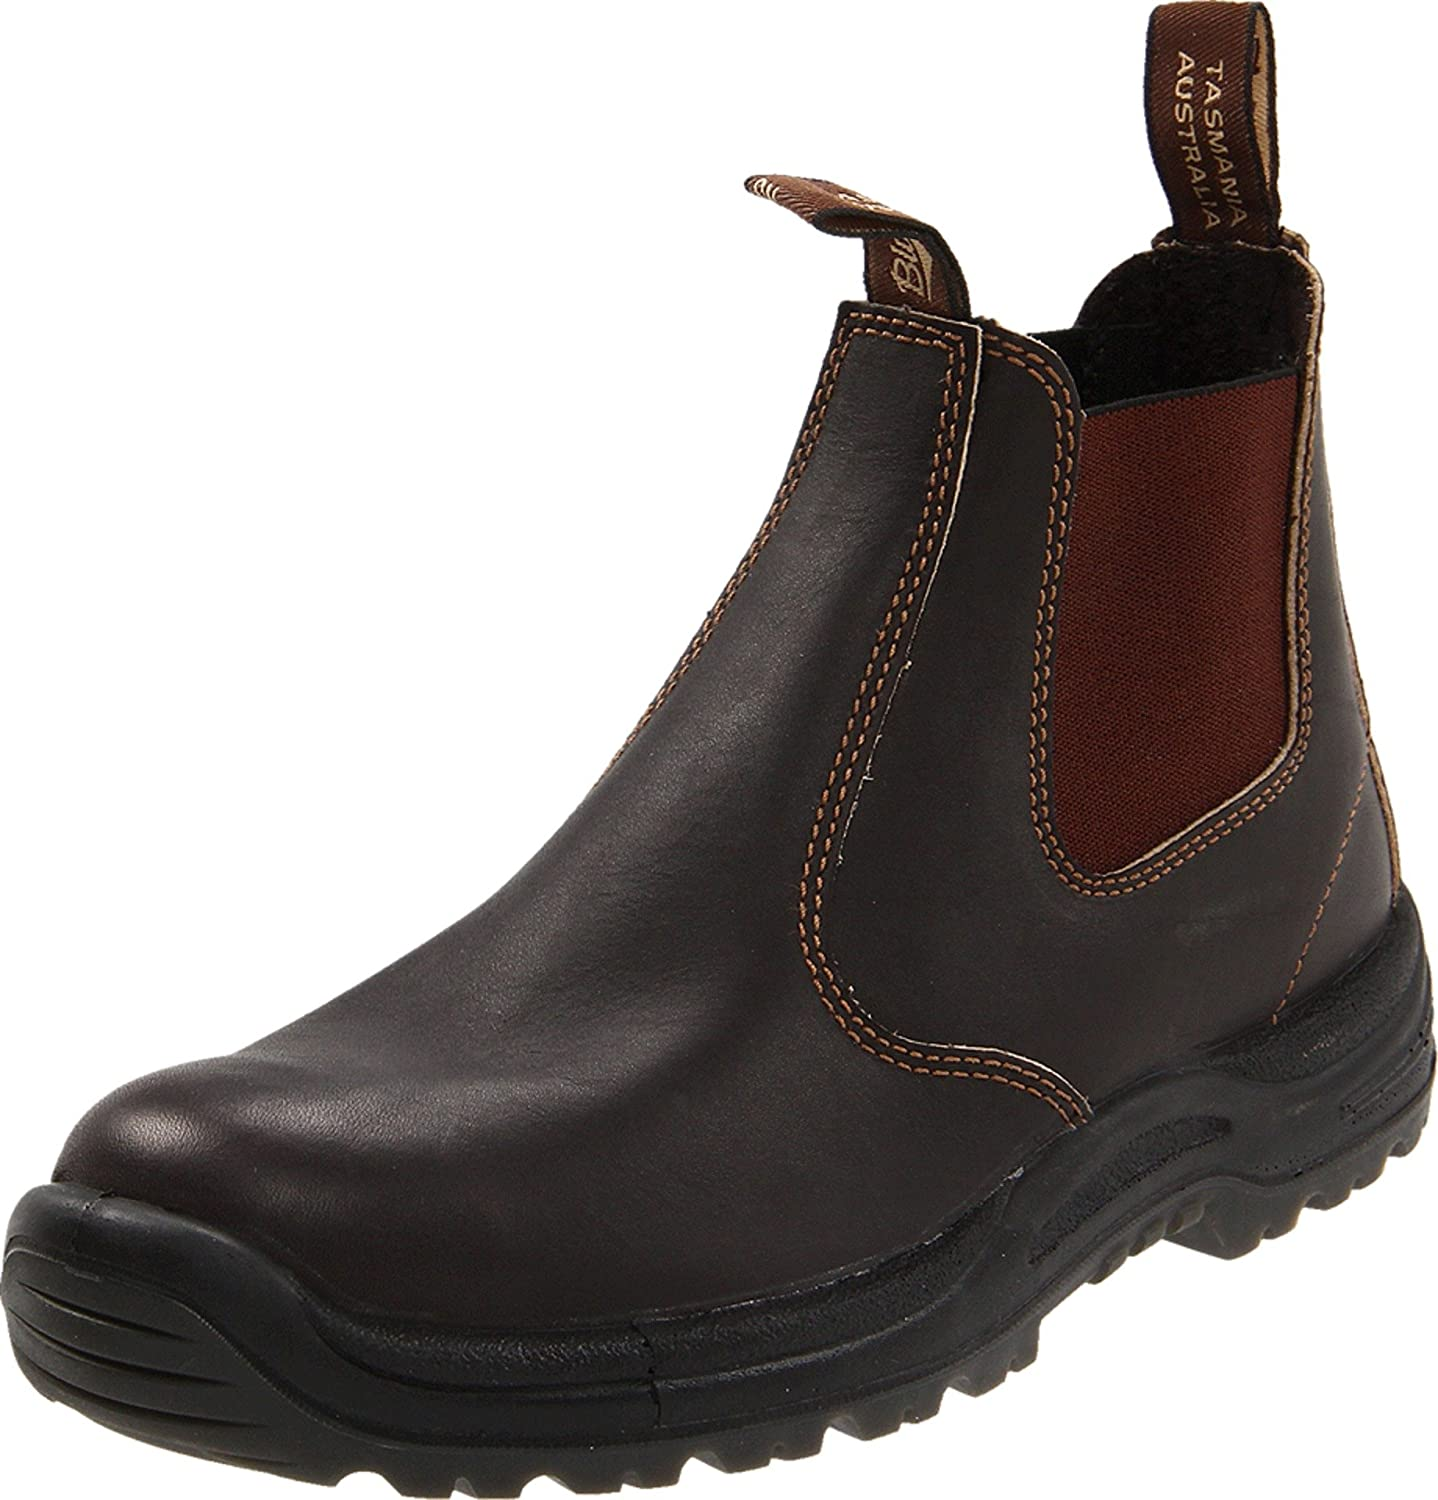 Blundstone 490 Bump-Toe Boot